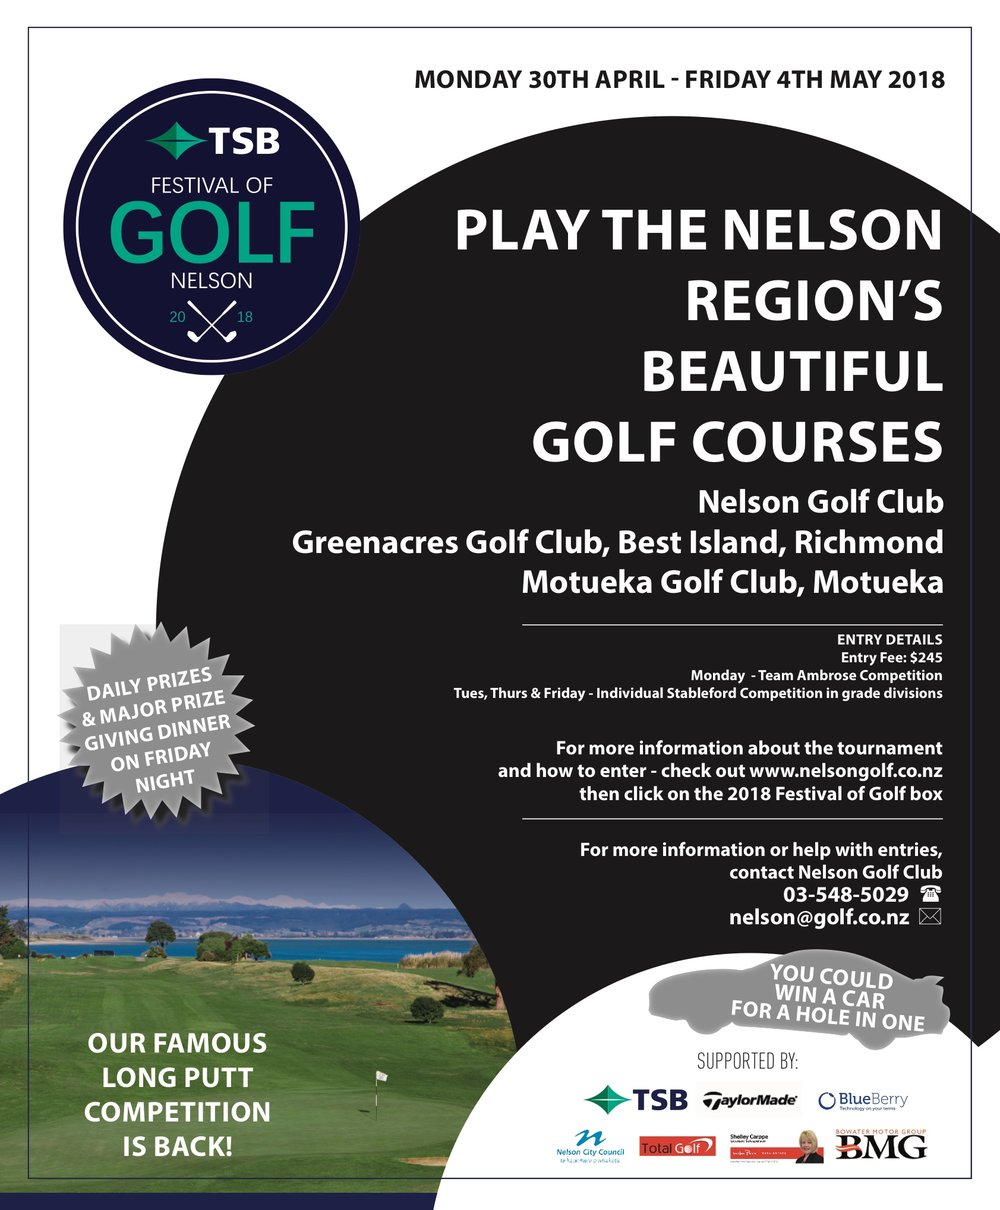 Nelson Festival of Golf FULL PAGE 201802.jpg